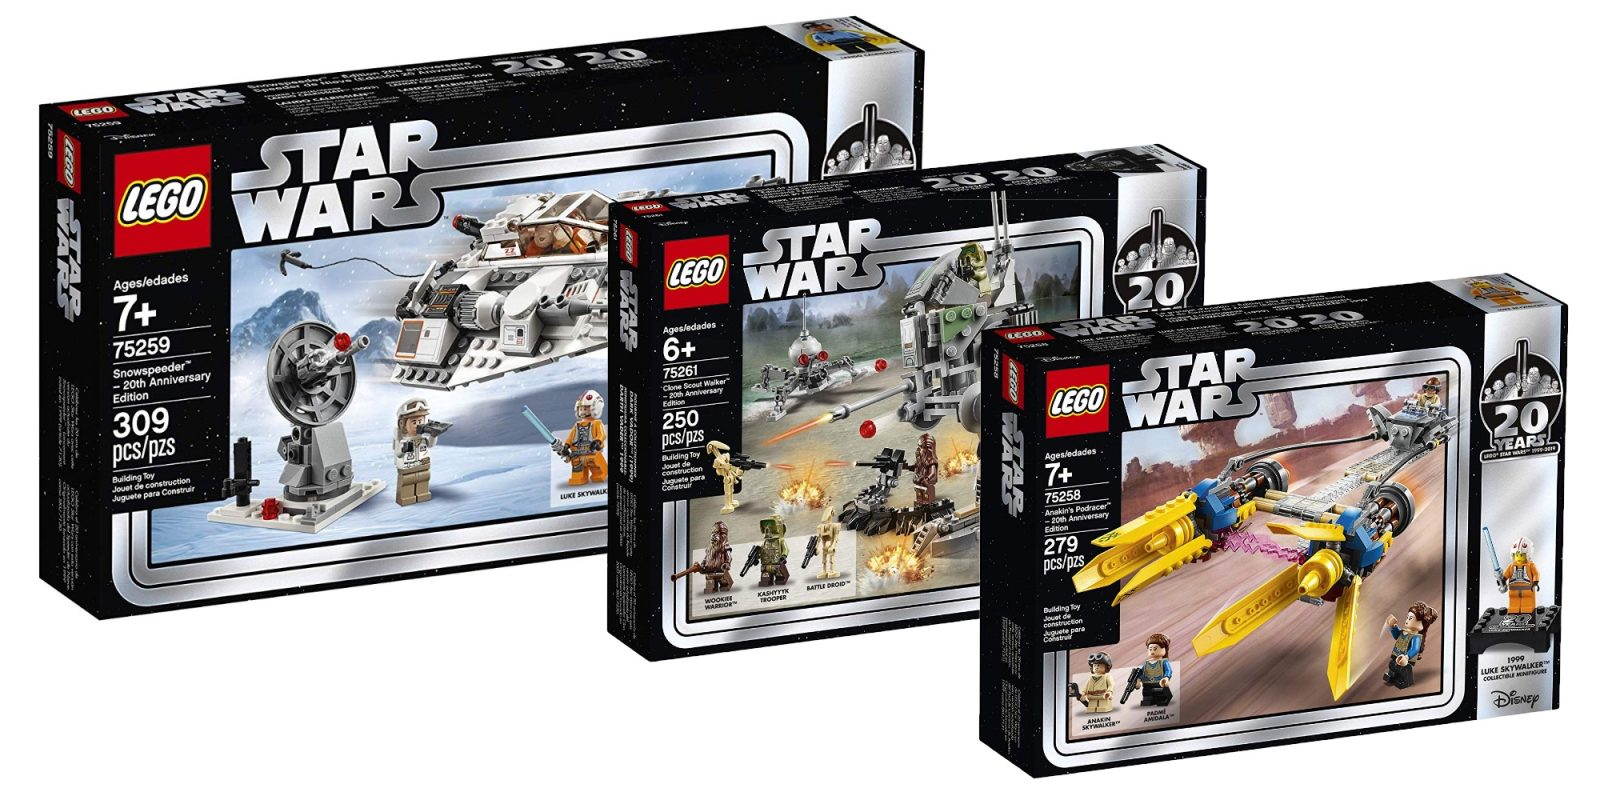 Save 20 On The All New 20th Anniversary Lego Star Wars Sets From